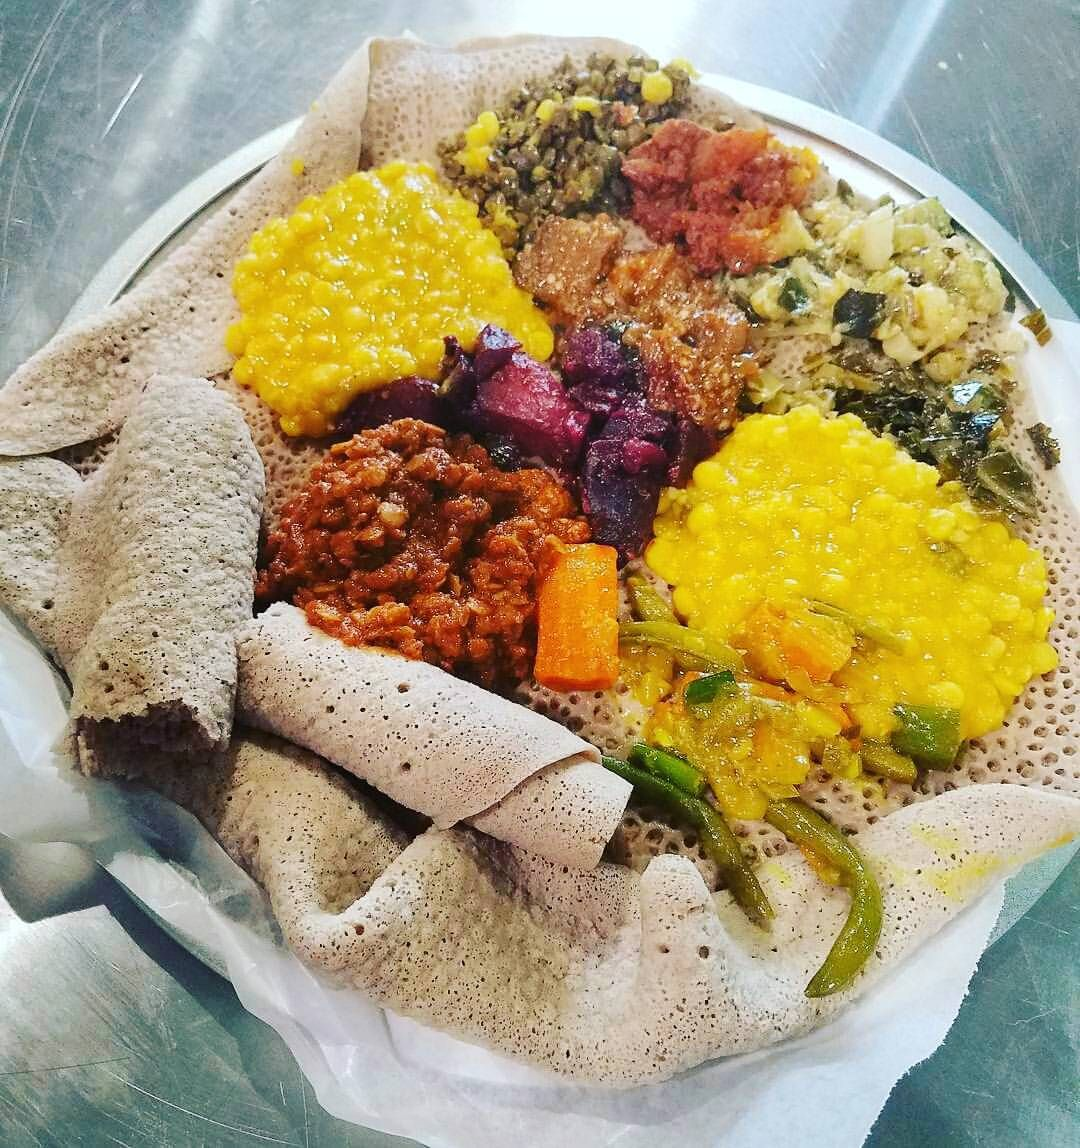 Indulge in africas mouth watering food culture